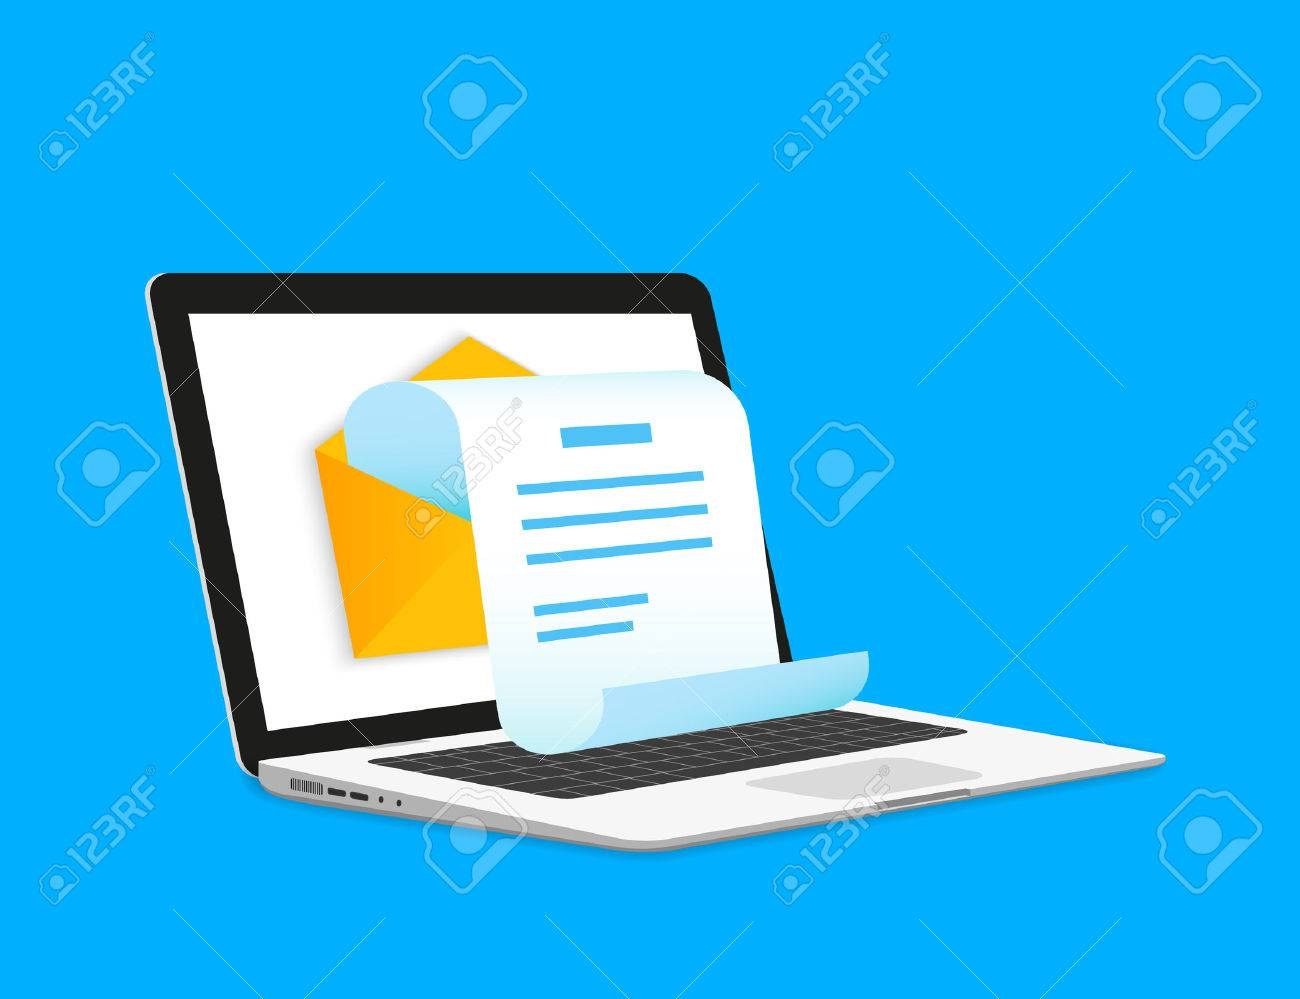 Newsletter illustration with laptop isolated on blue - 36148606